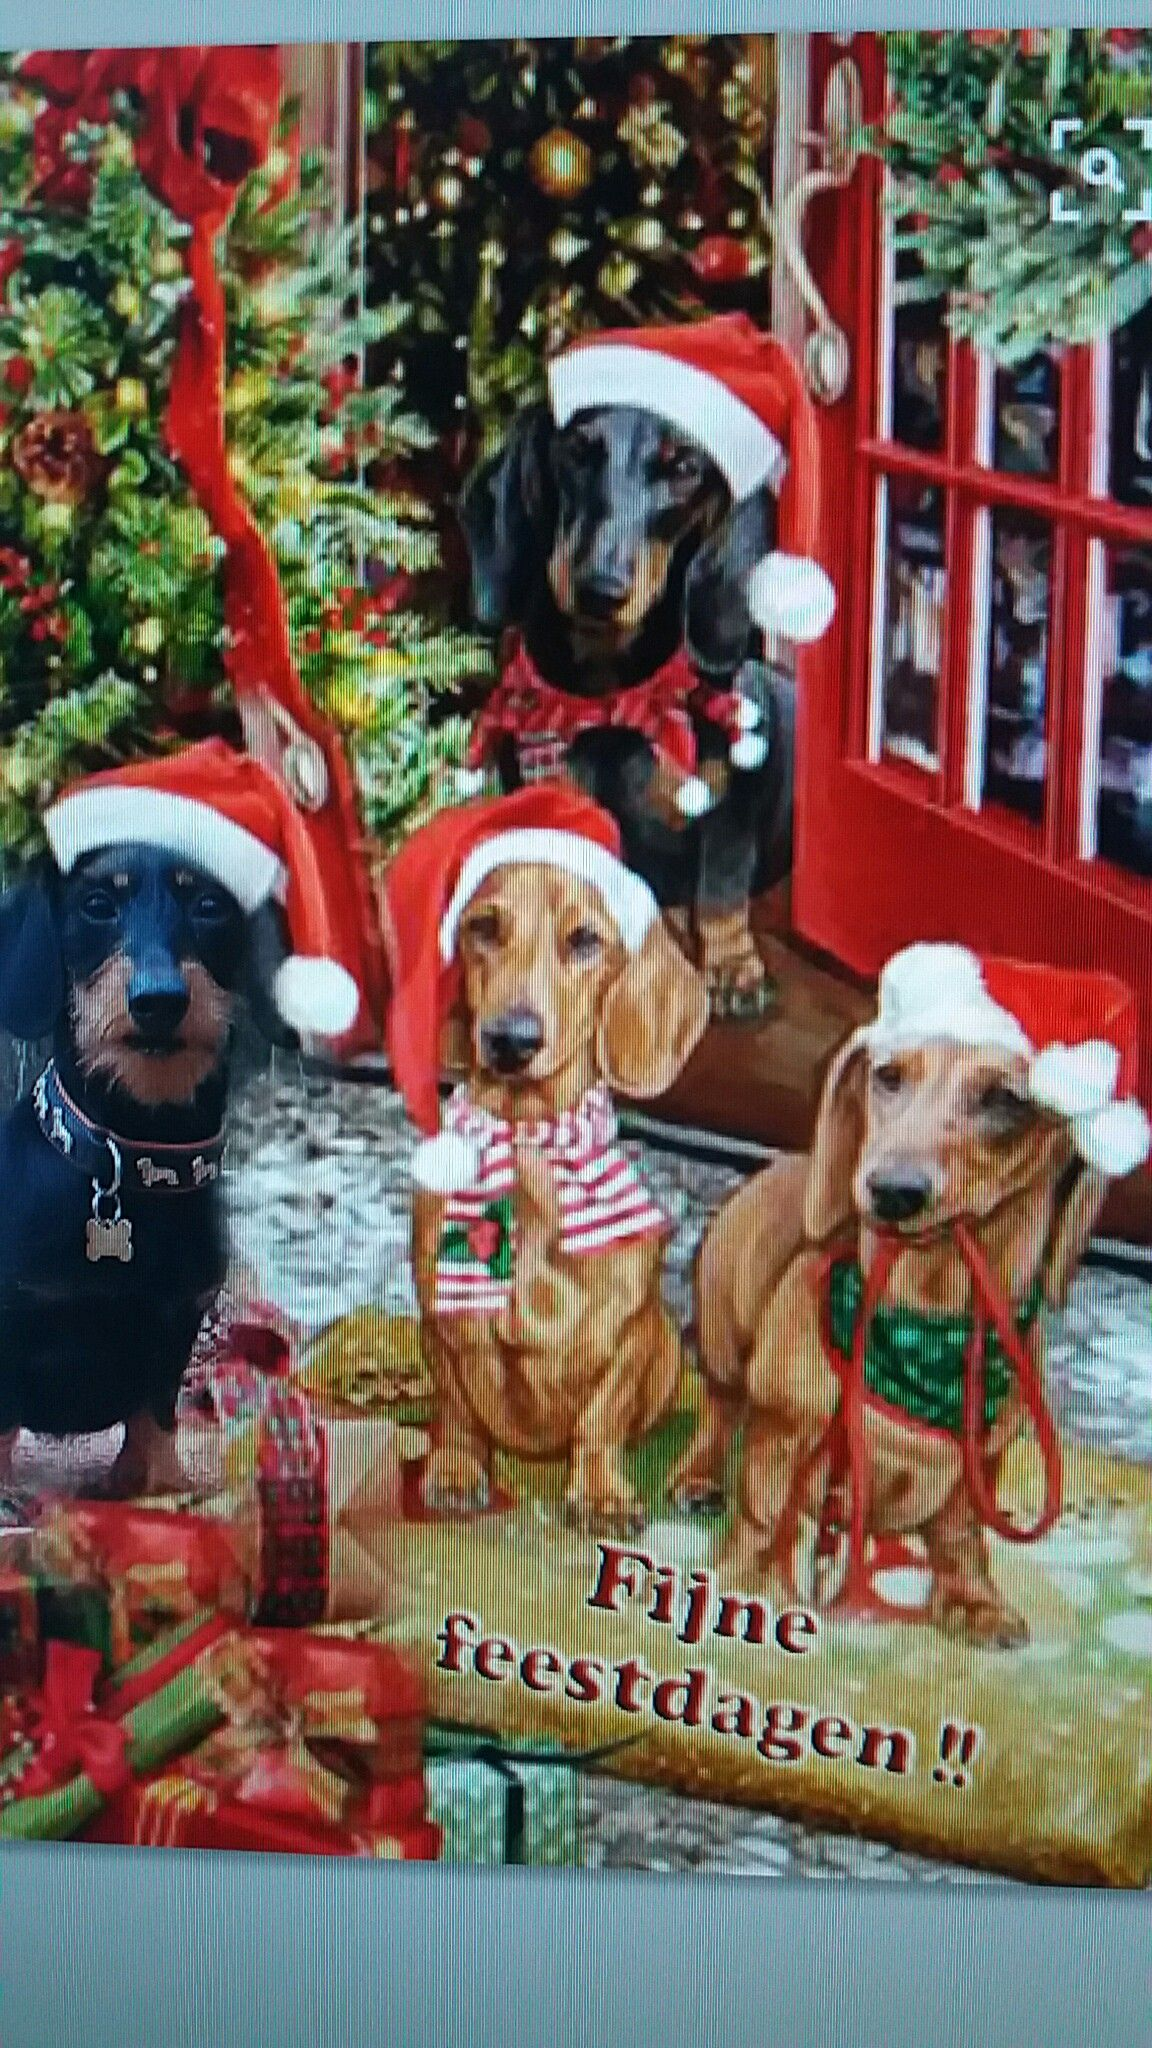 Pin By Ramona On Christmas Sentiment Vintage Dachshund